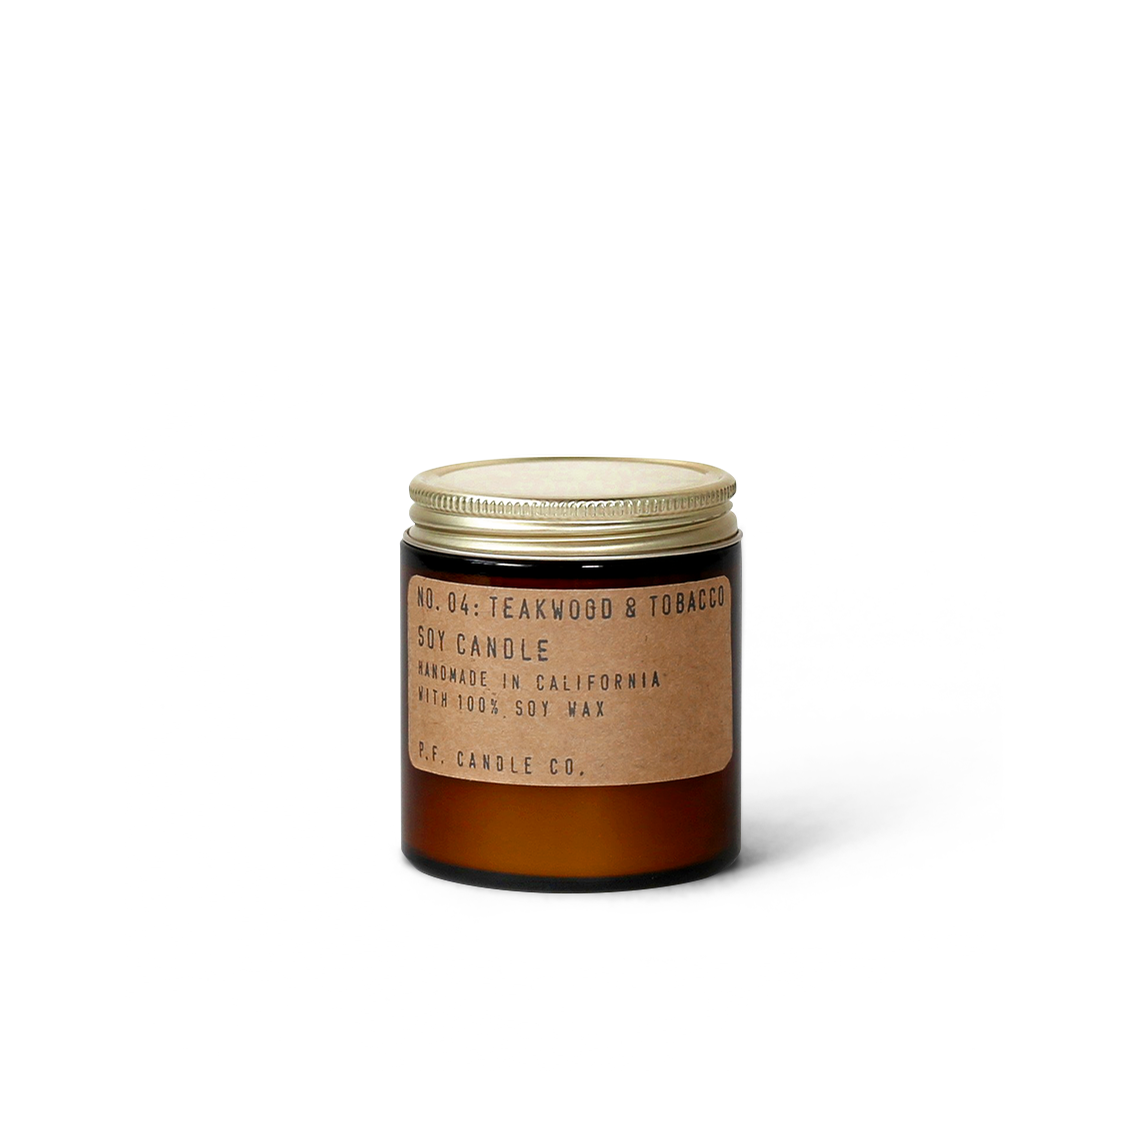 PF Candle Co Teakwood and Toabcco 3.5 oz